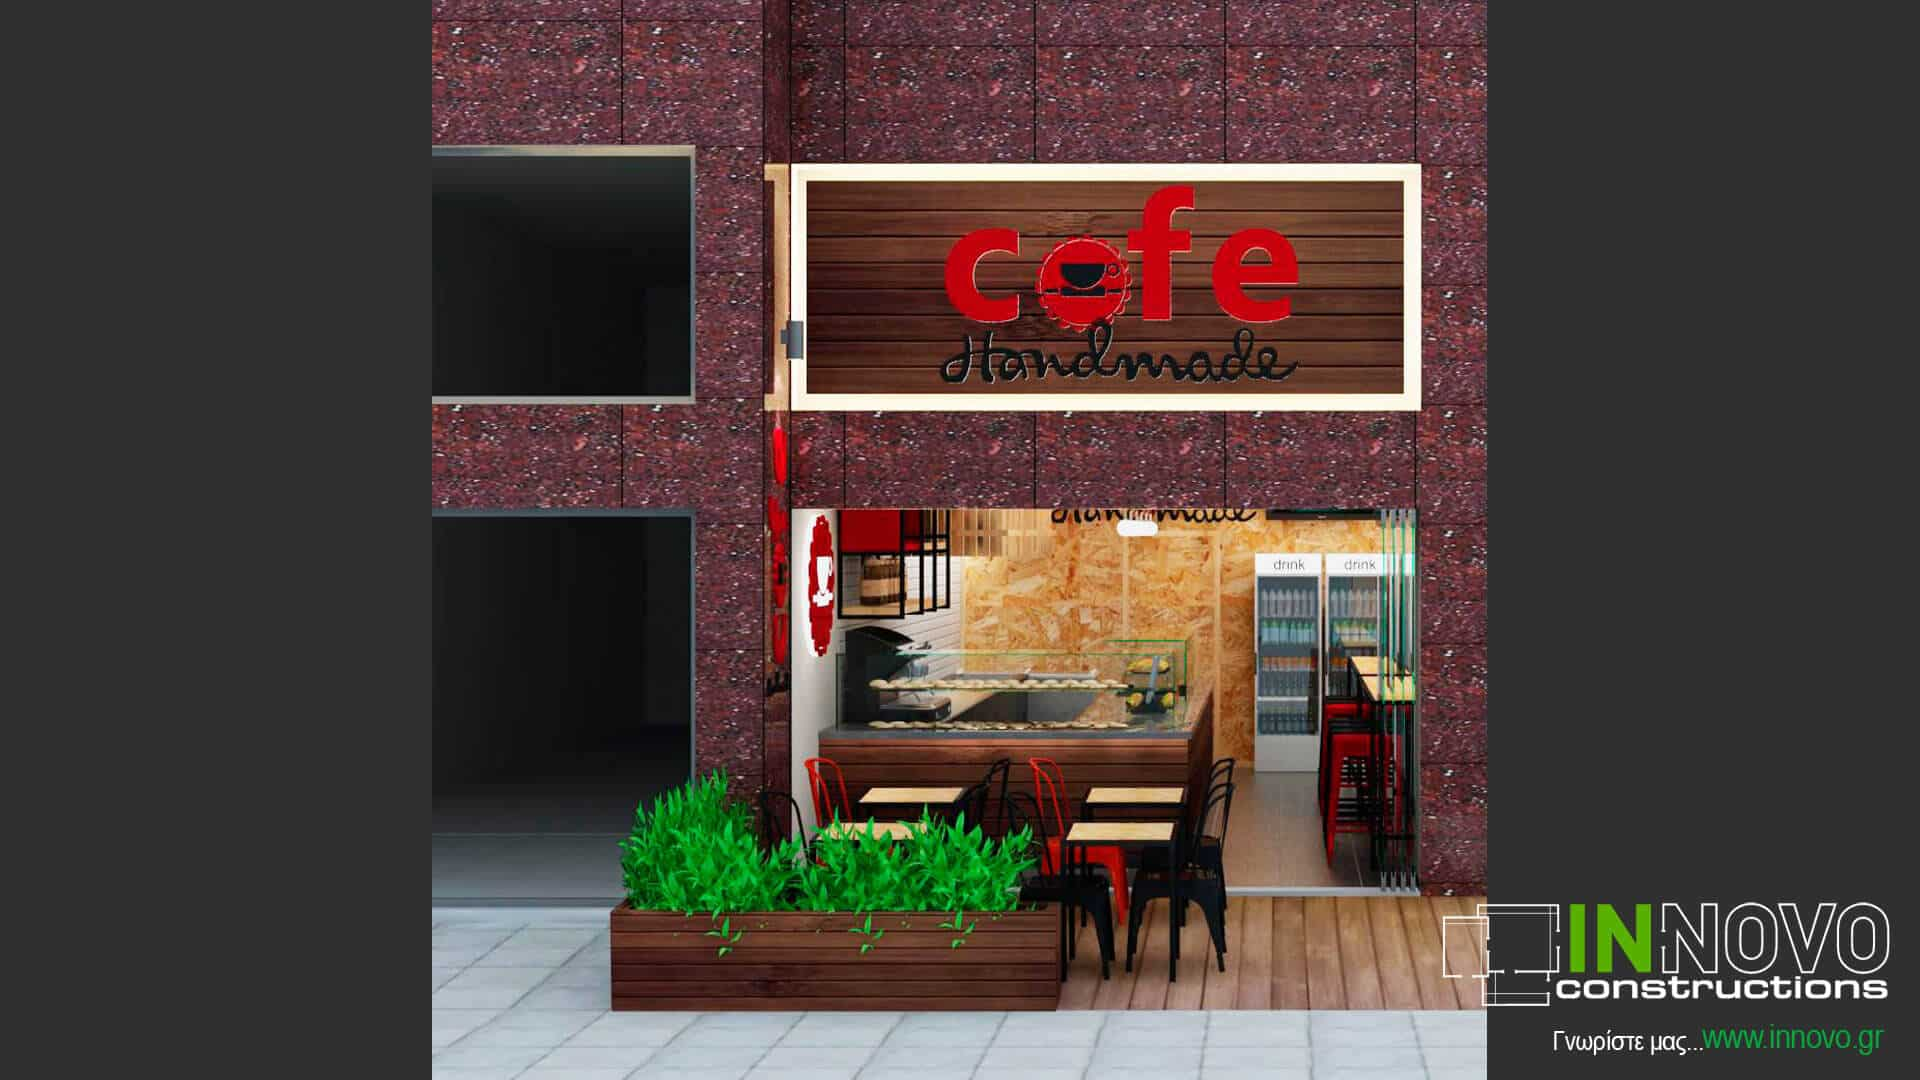 kataskevi-snack-cafe-construction-cafe-melissia-1720-5